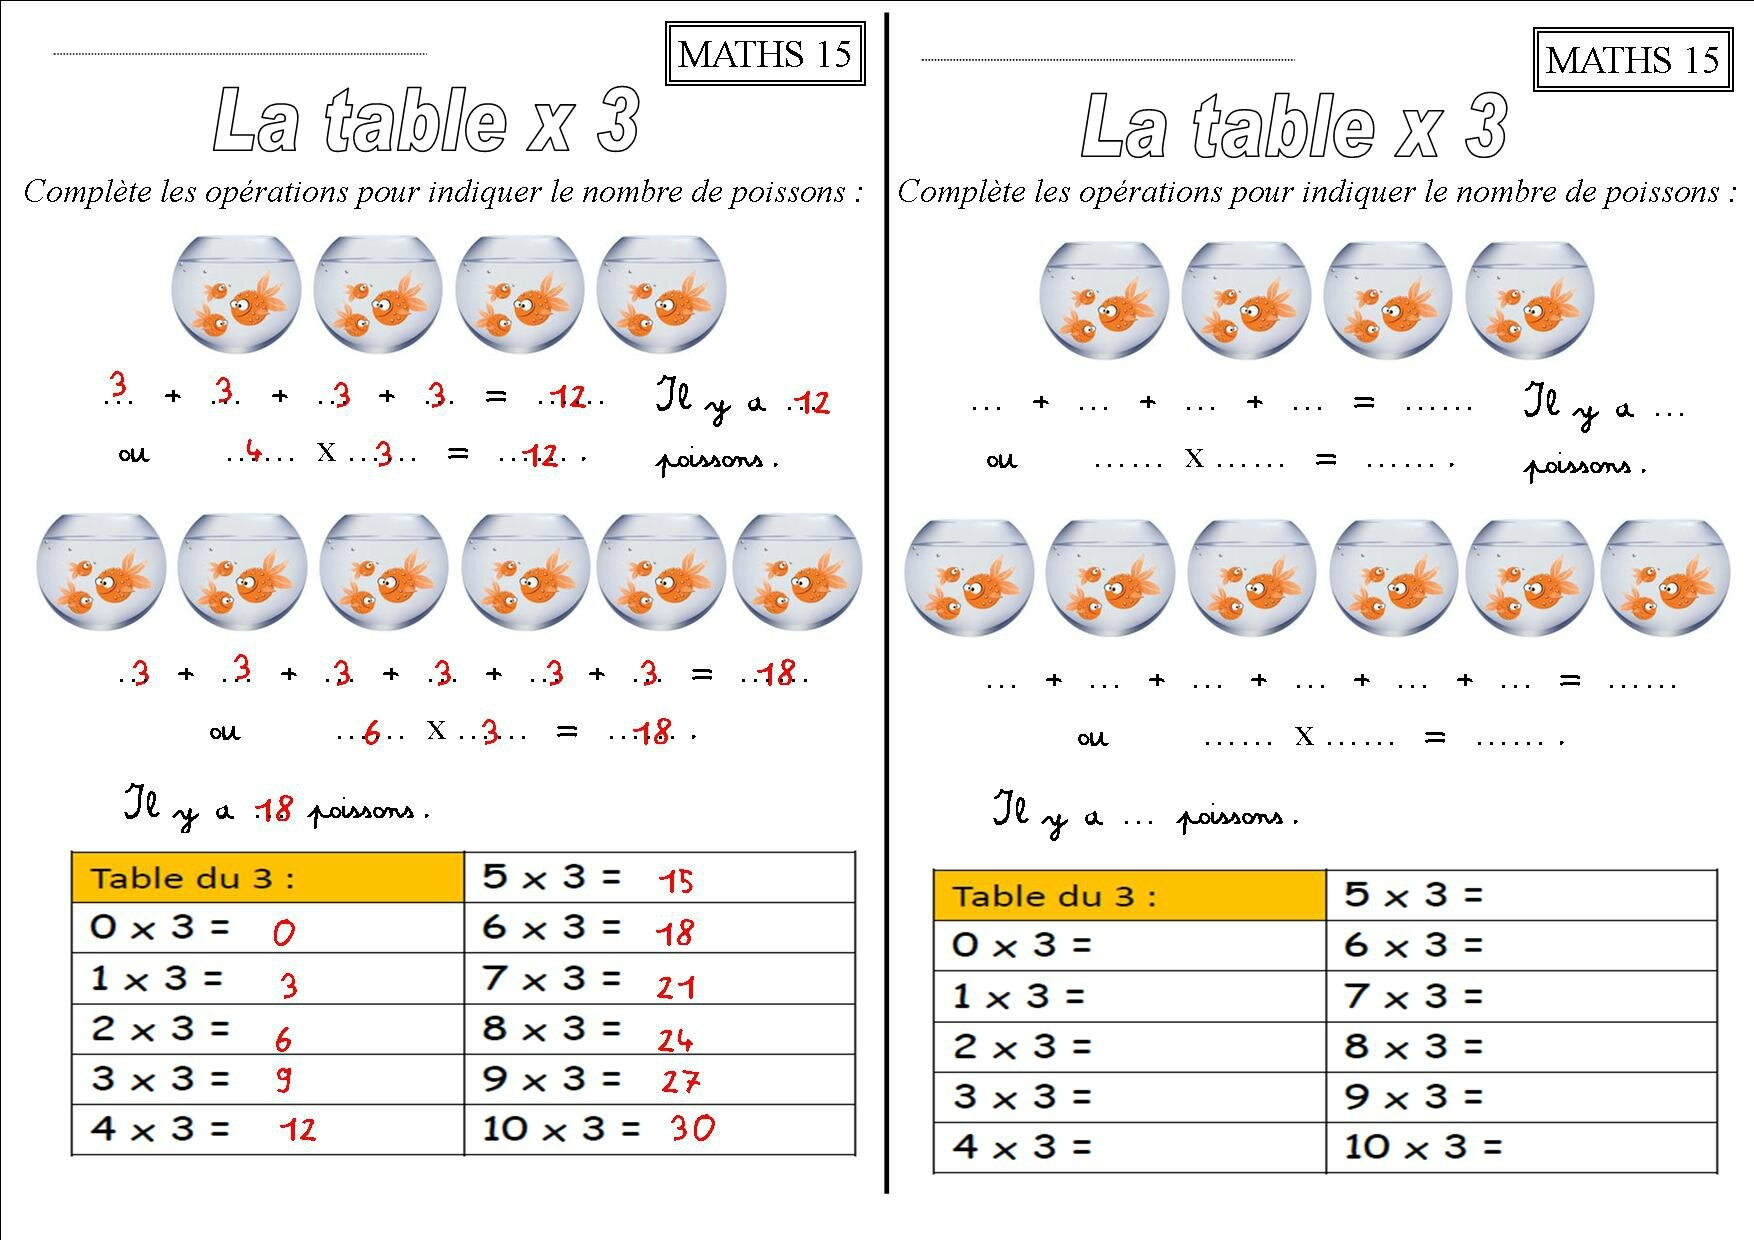 Exercice de table de multiplication 2 3 4 5 6 images des for Table de multiplication de 2 a 5